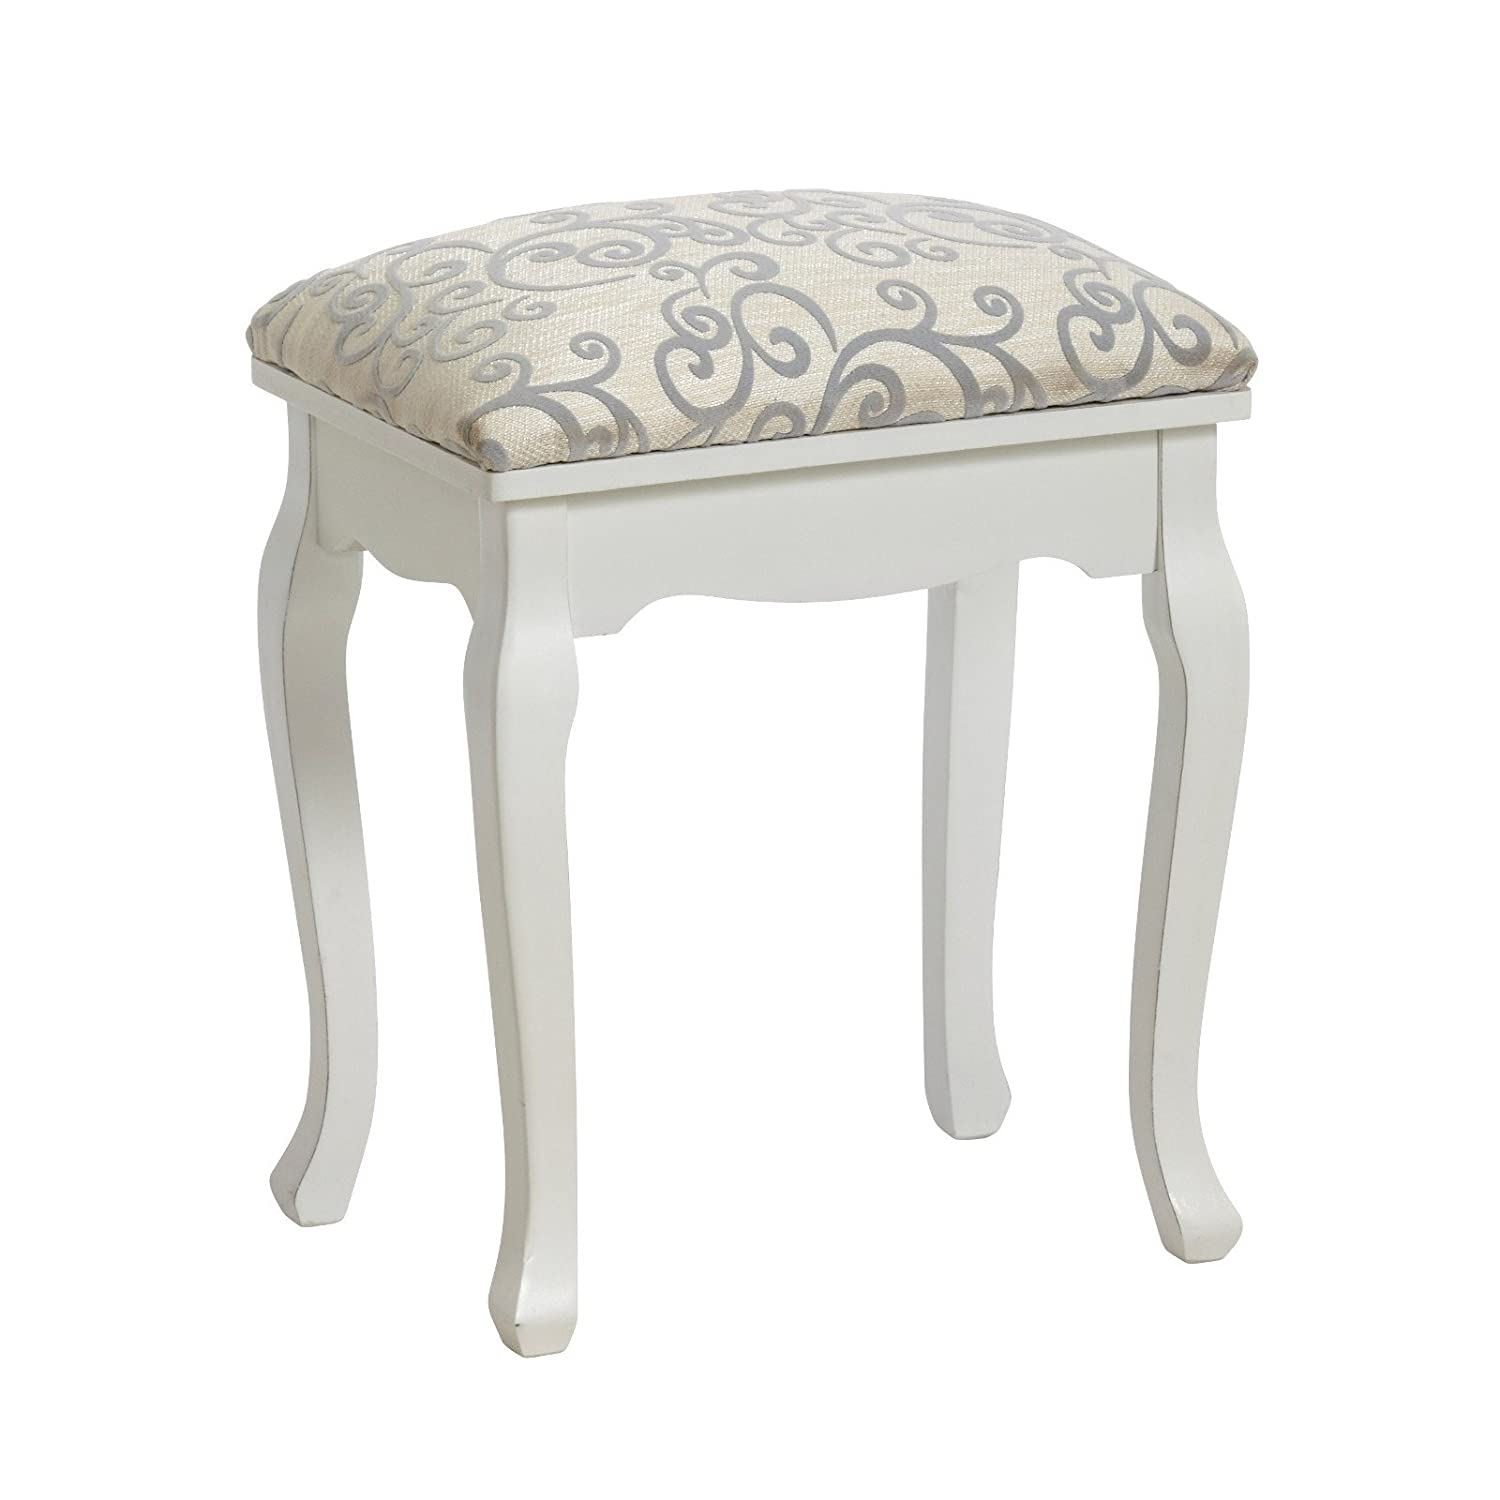 DESIGN DELIGHTS ELEGANT STOOL BAROQUE dressing table piano upholstered from Xtradefactory xtradefactory GmbH